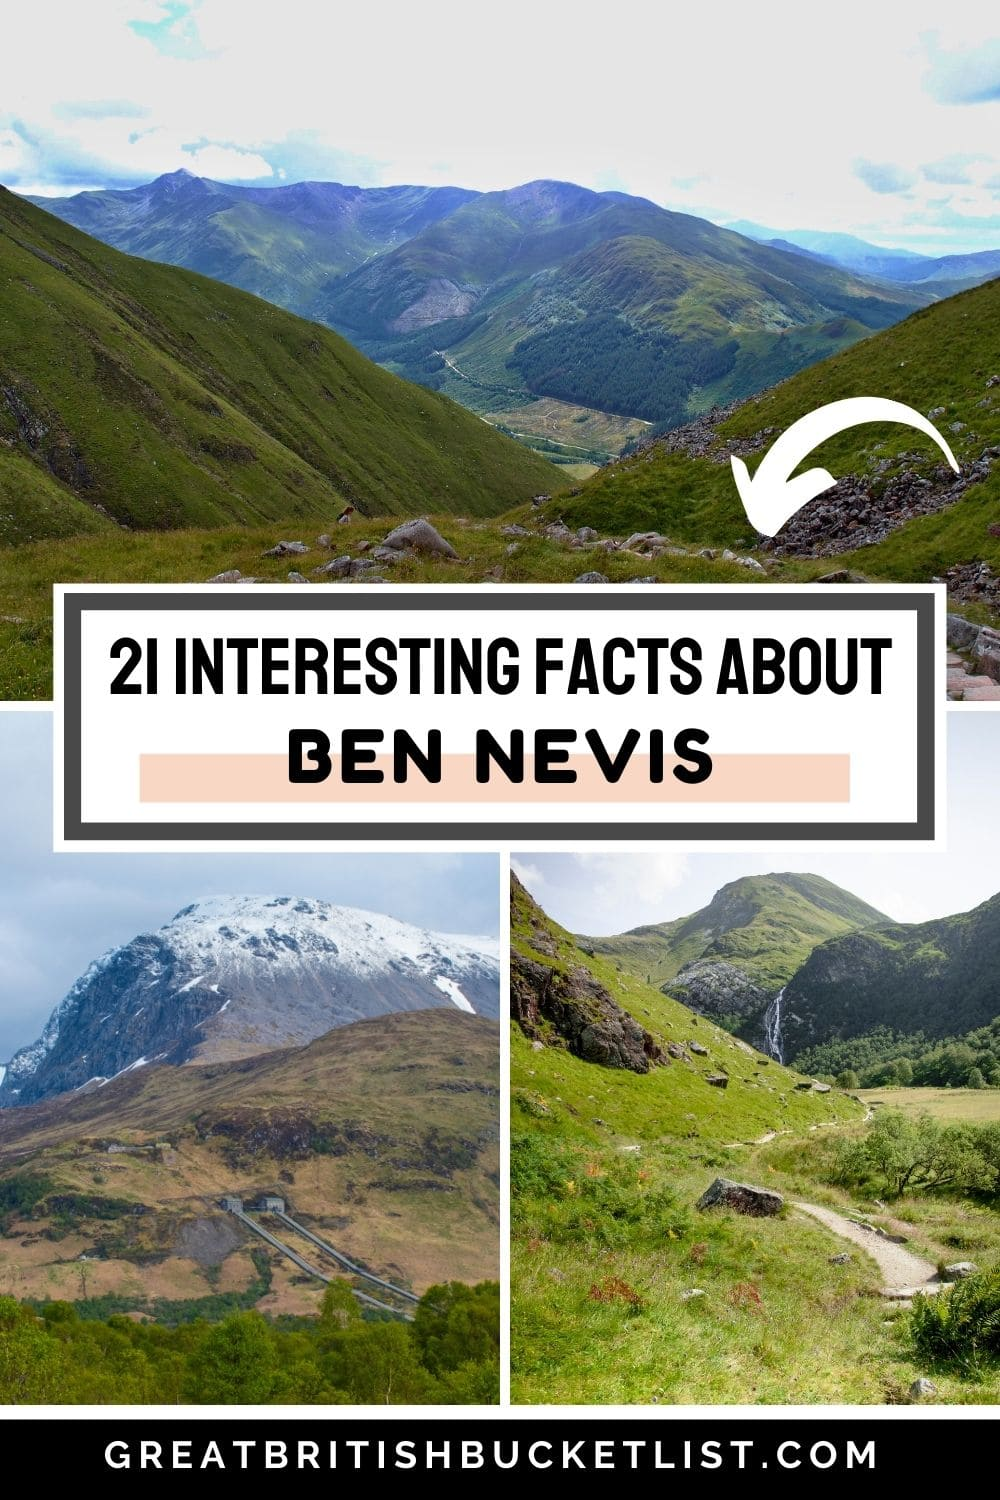 Facts about Ben Nevis